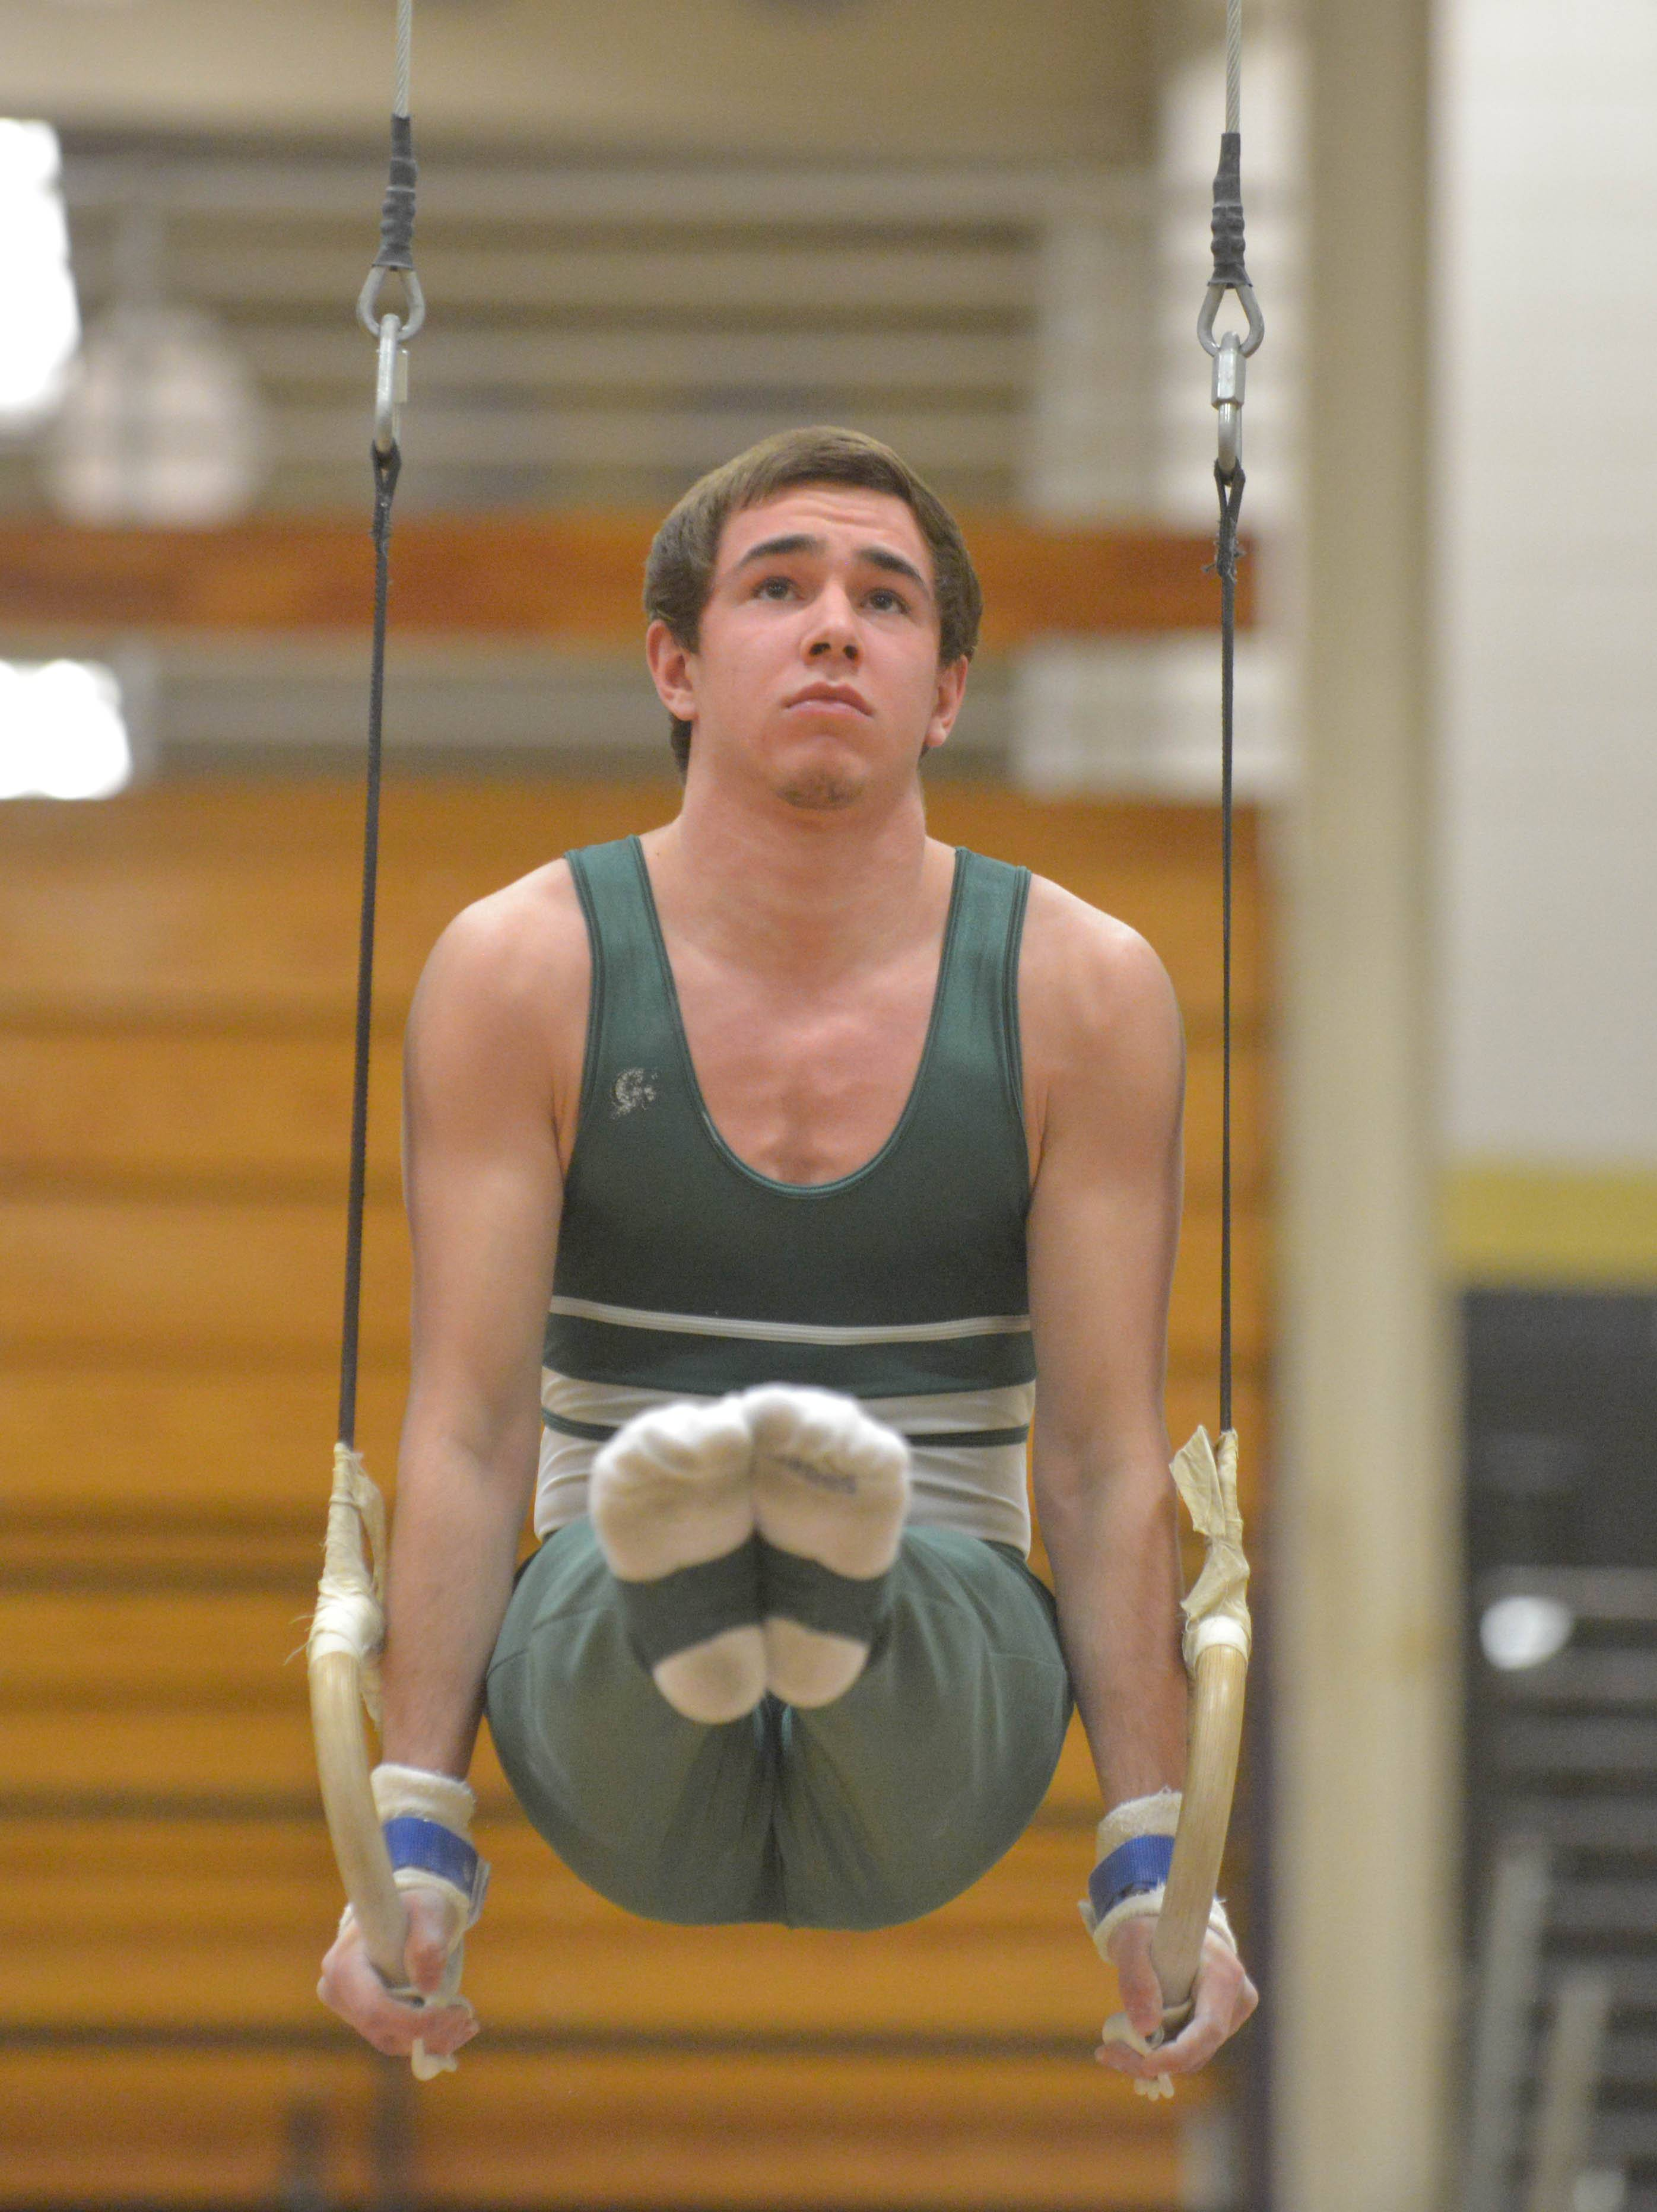 Tommy Berland of Glenbard West on the rings during the District 87 boys gymnastics meet Thursday at Glenbard North High School.